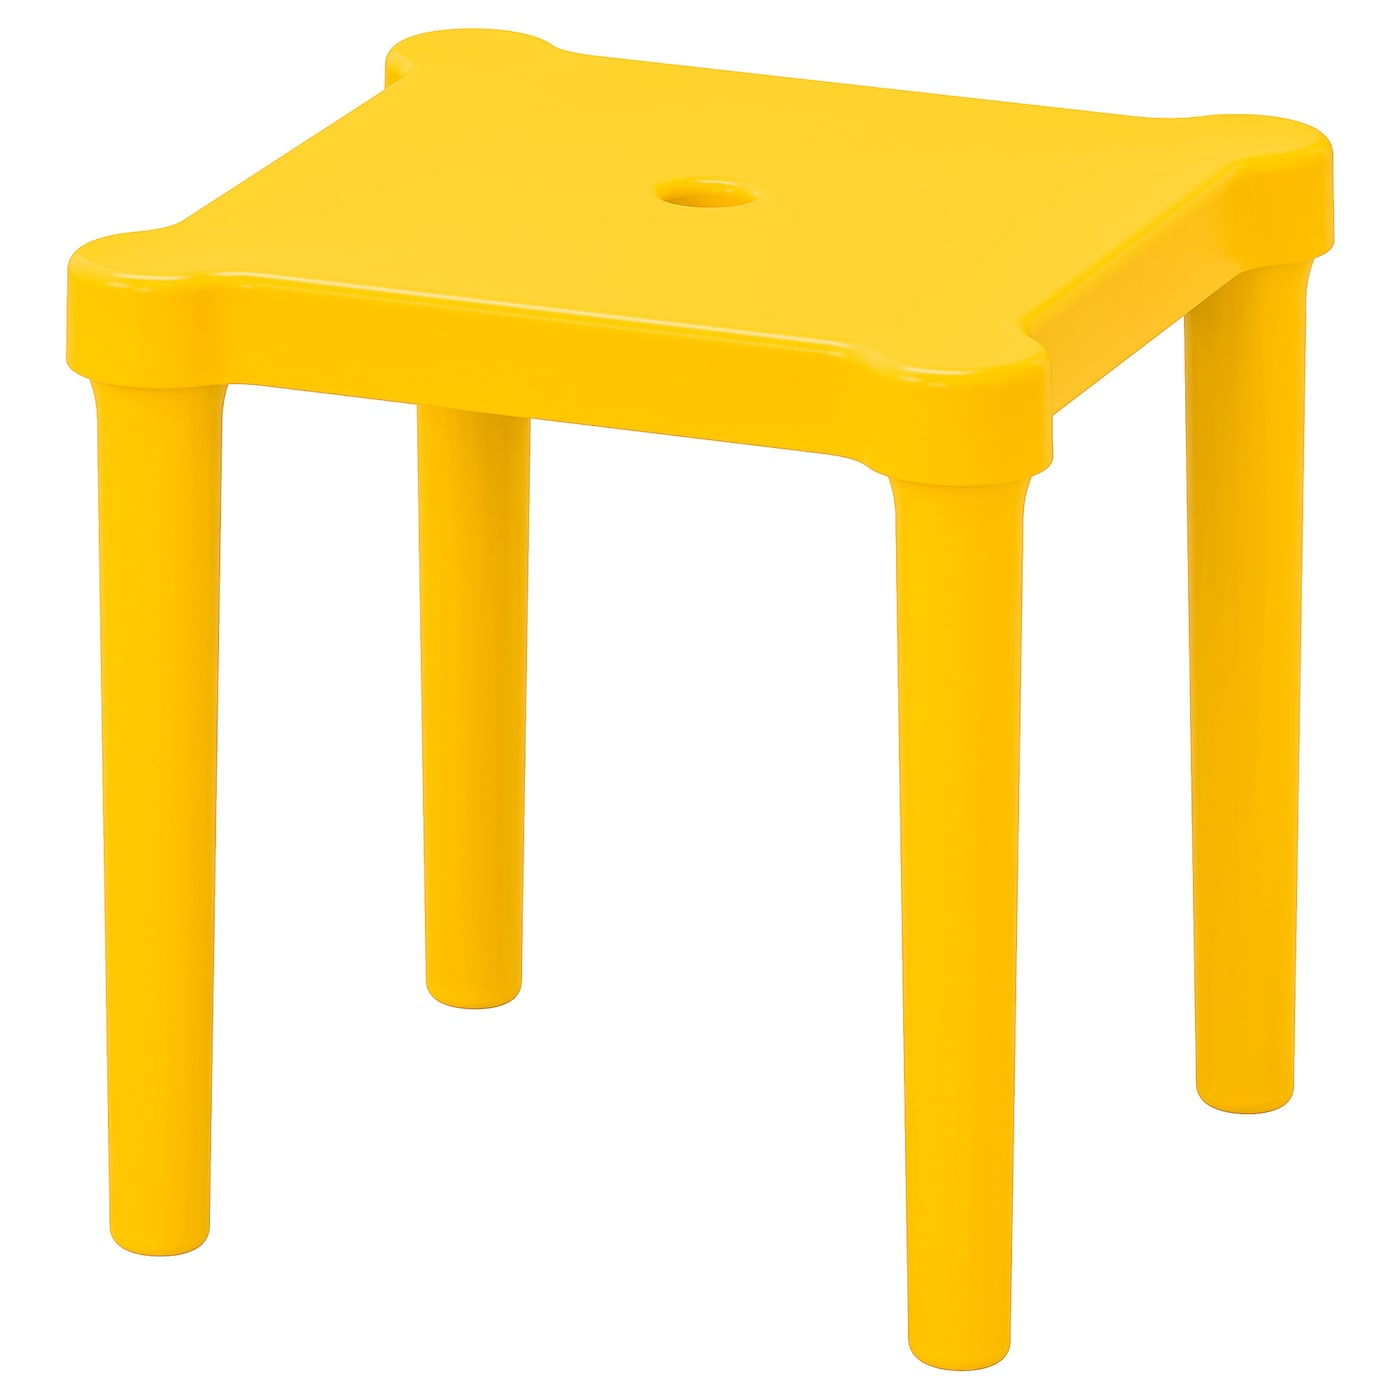 IKEA UTTER children's stool  Easy to assemble without tools or screws.